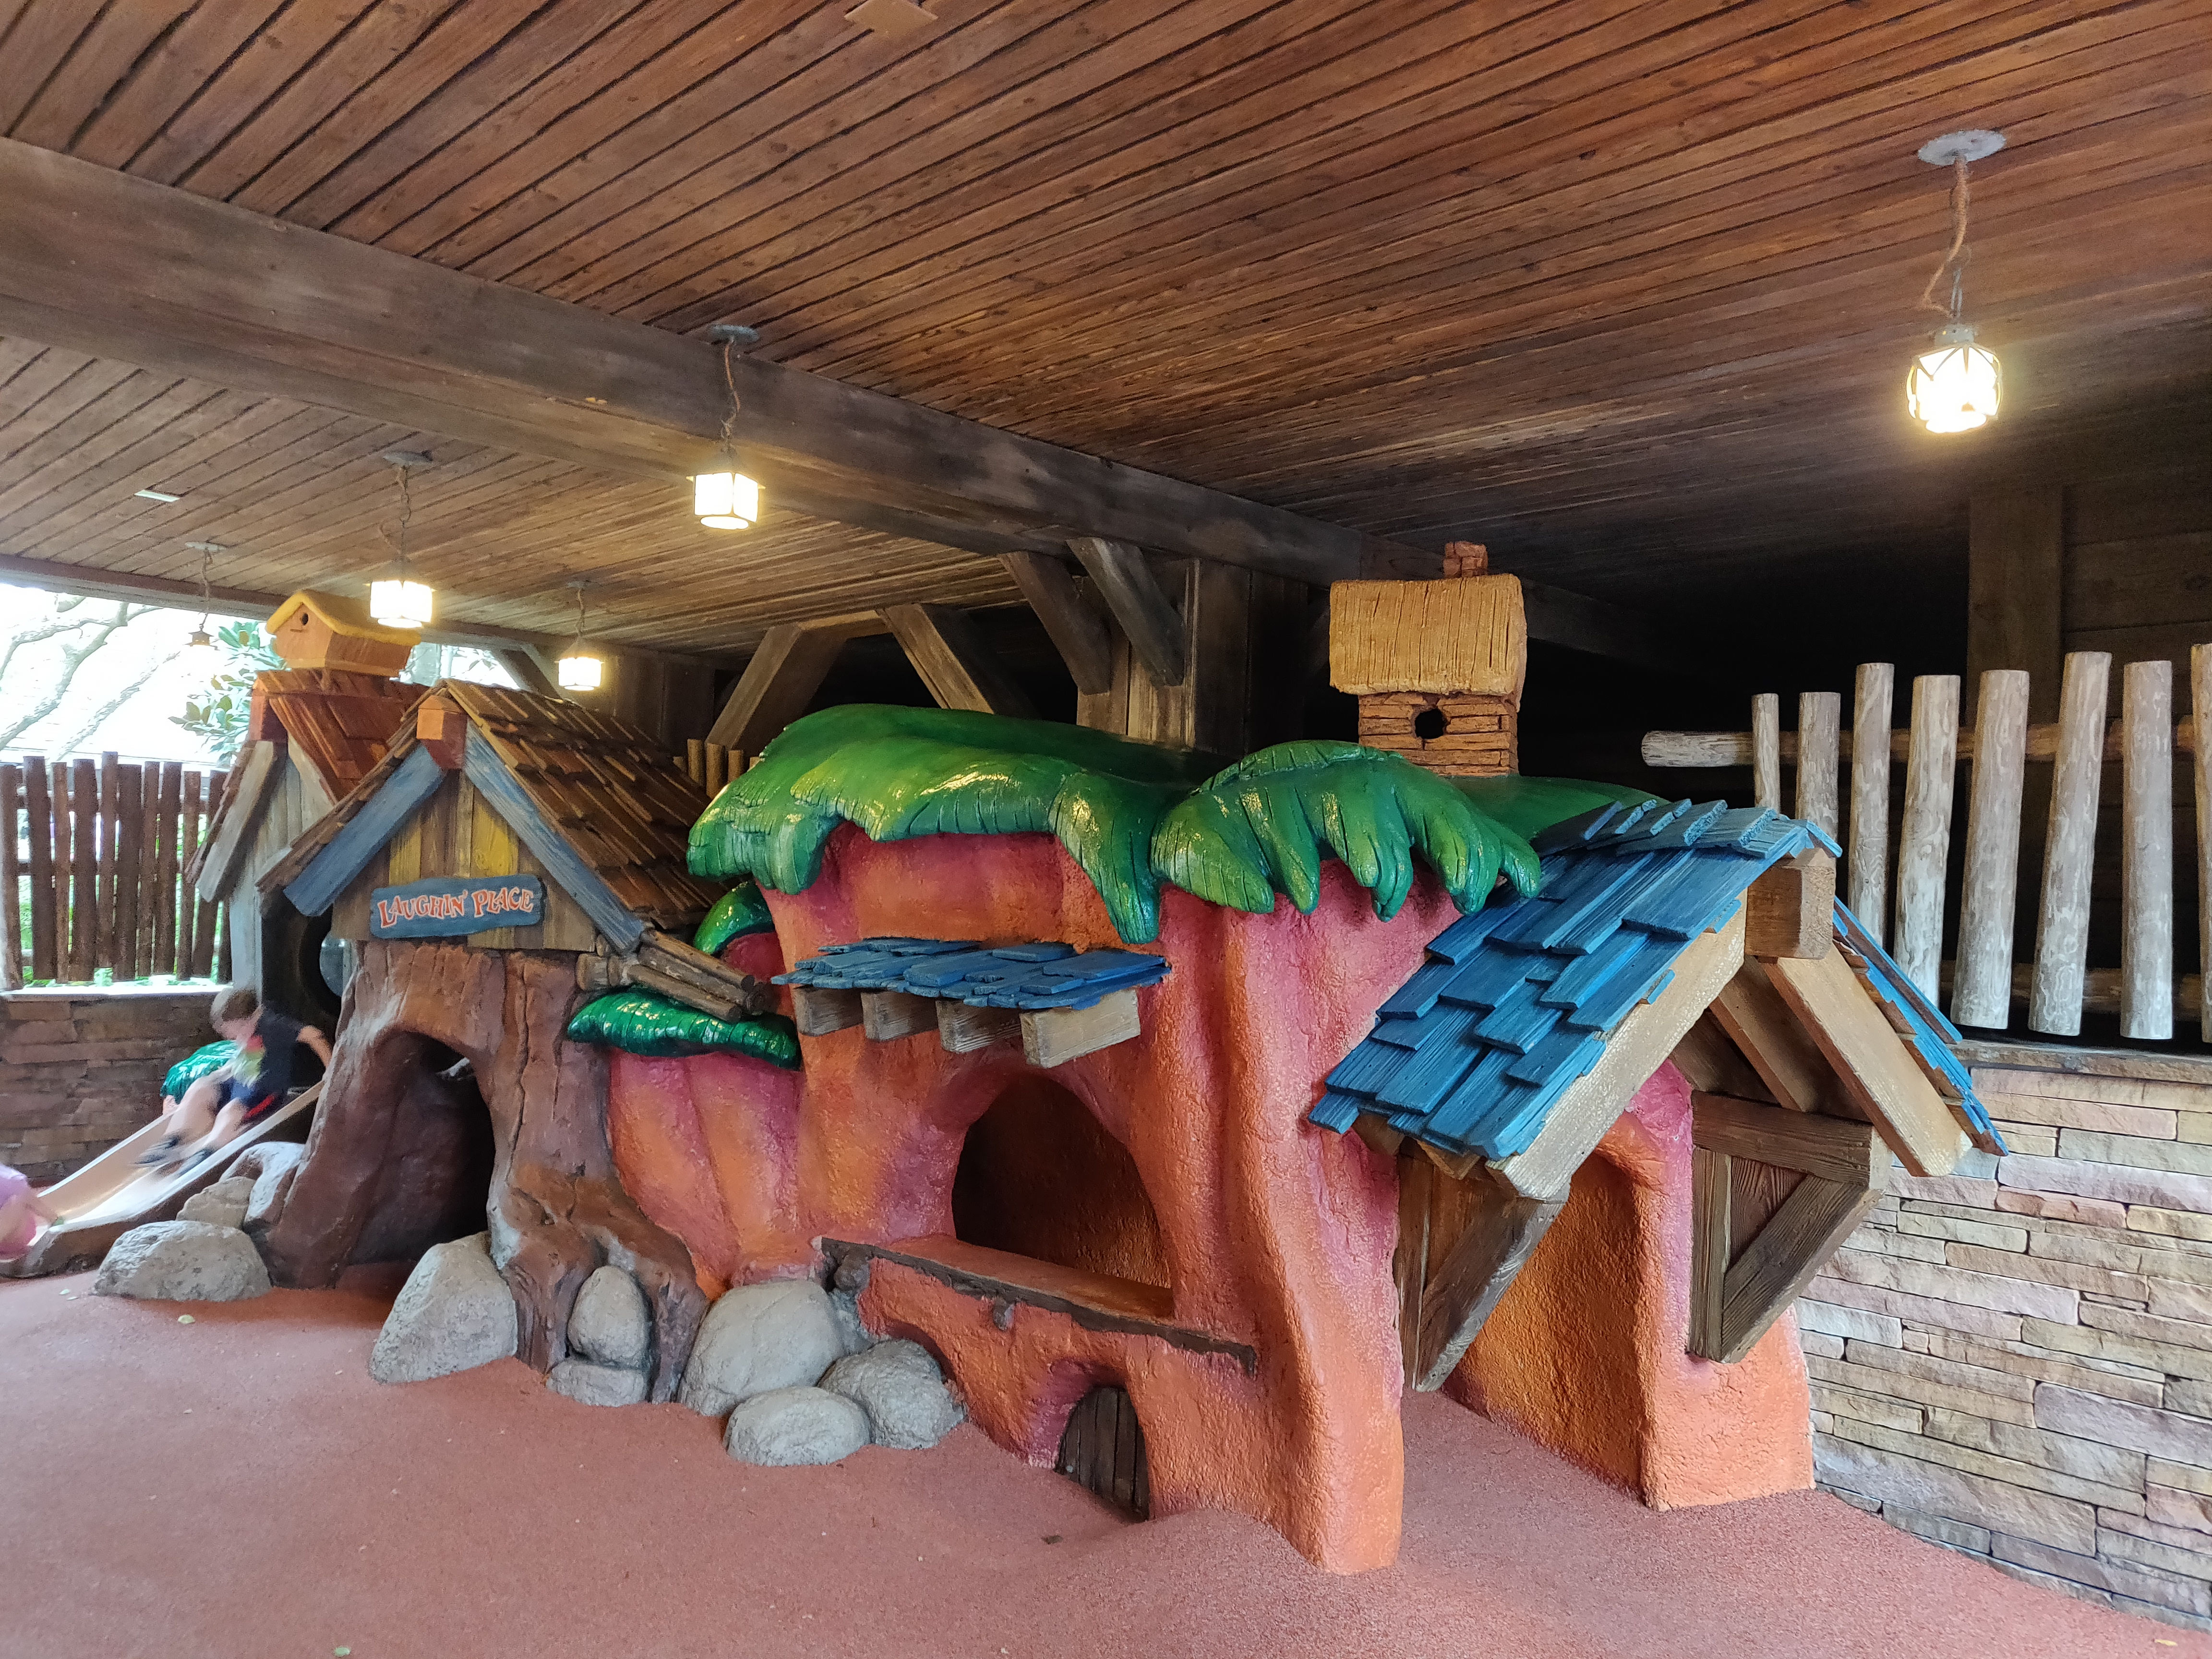 Laughing Place Play Area